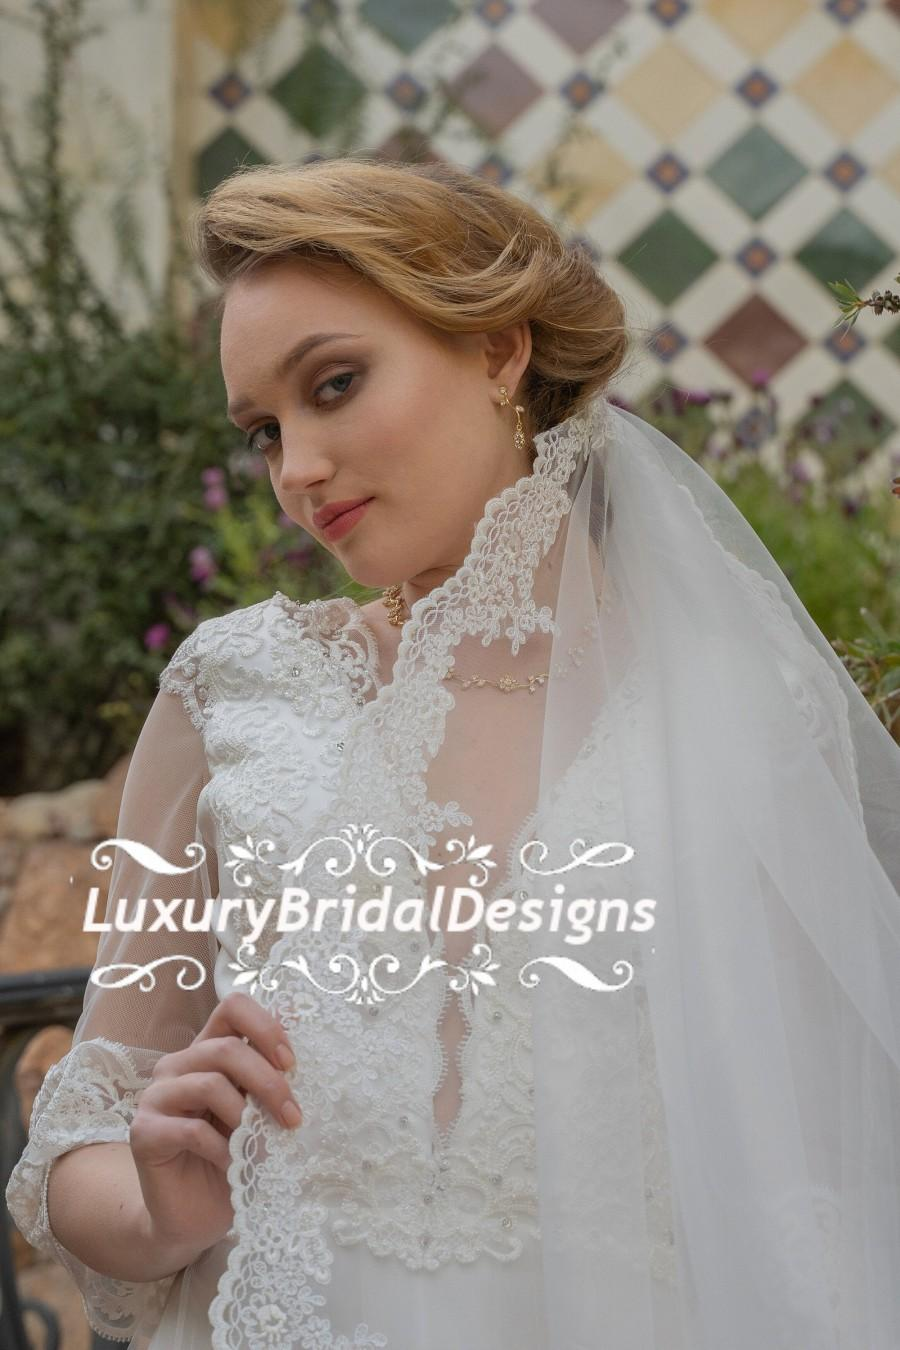 Wedding - 3X3 m Cathedral Lace Wedding Veil Wide Bridal Veil Mantilla Veil Bridal Veil Long Veil Lace Veil Ivory Veil, Ivory Veil, Lace Mantilla Veil